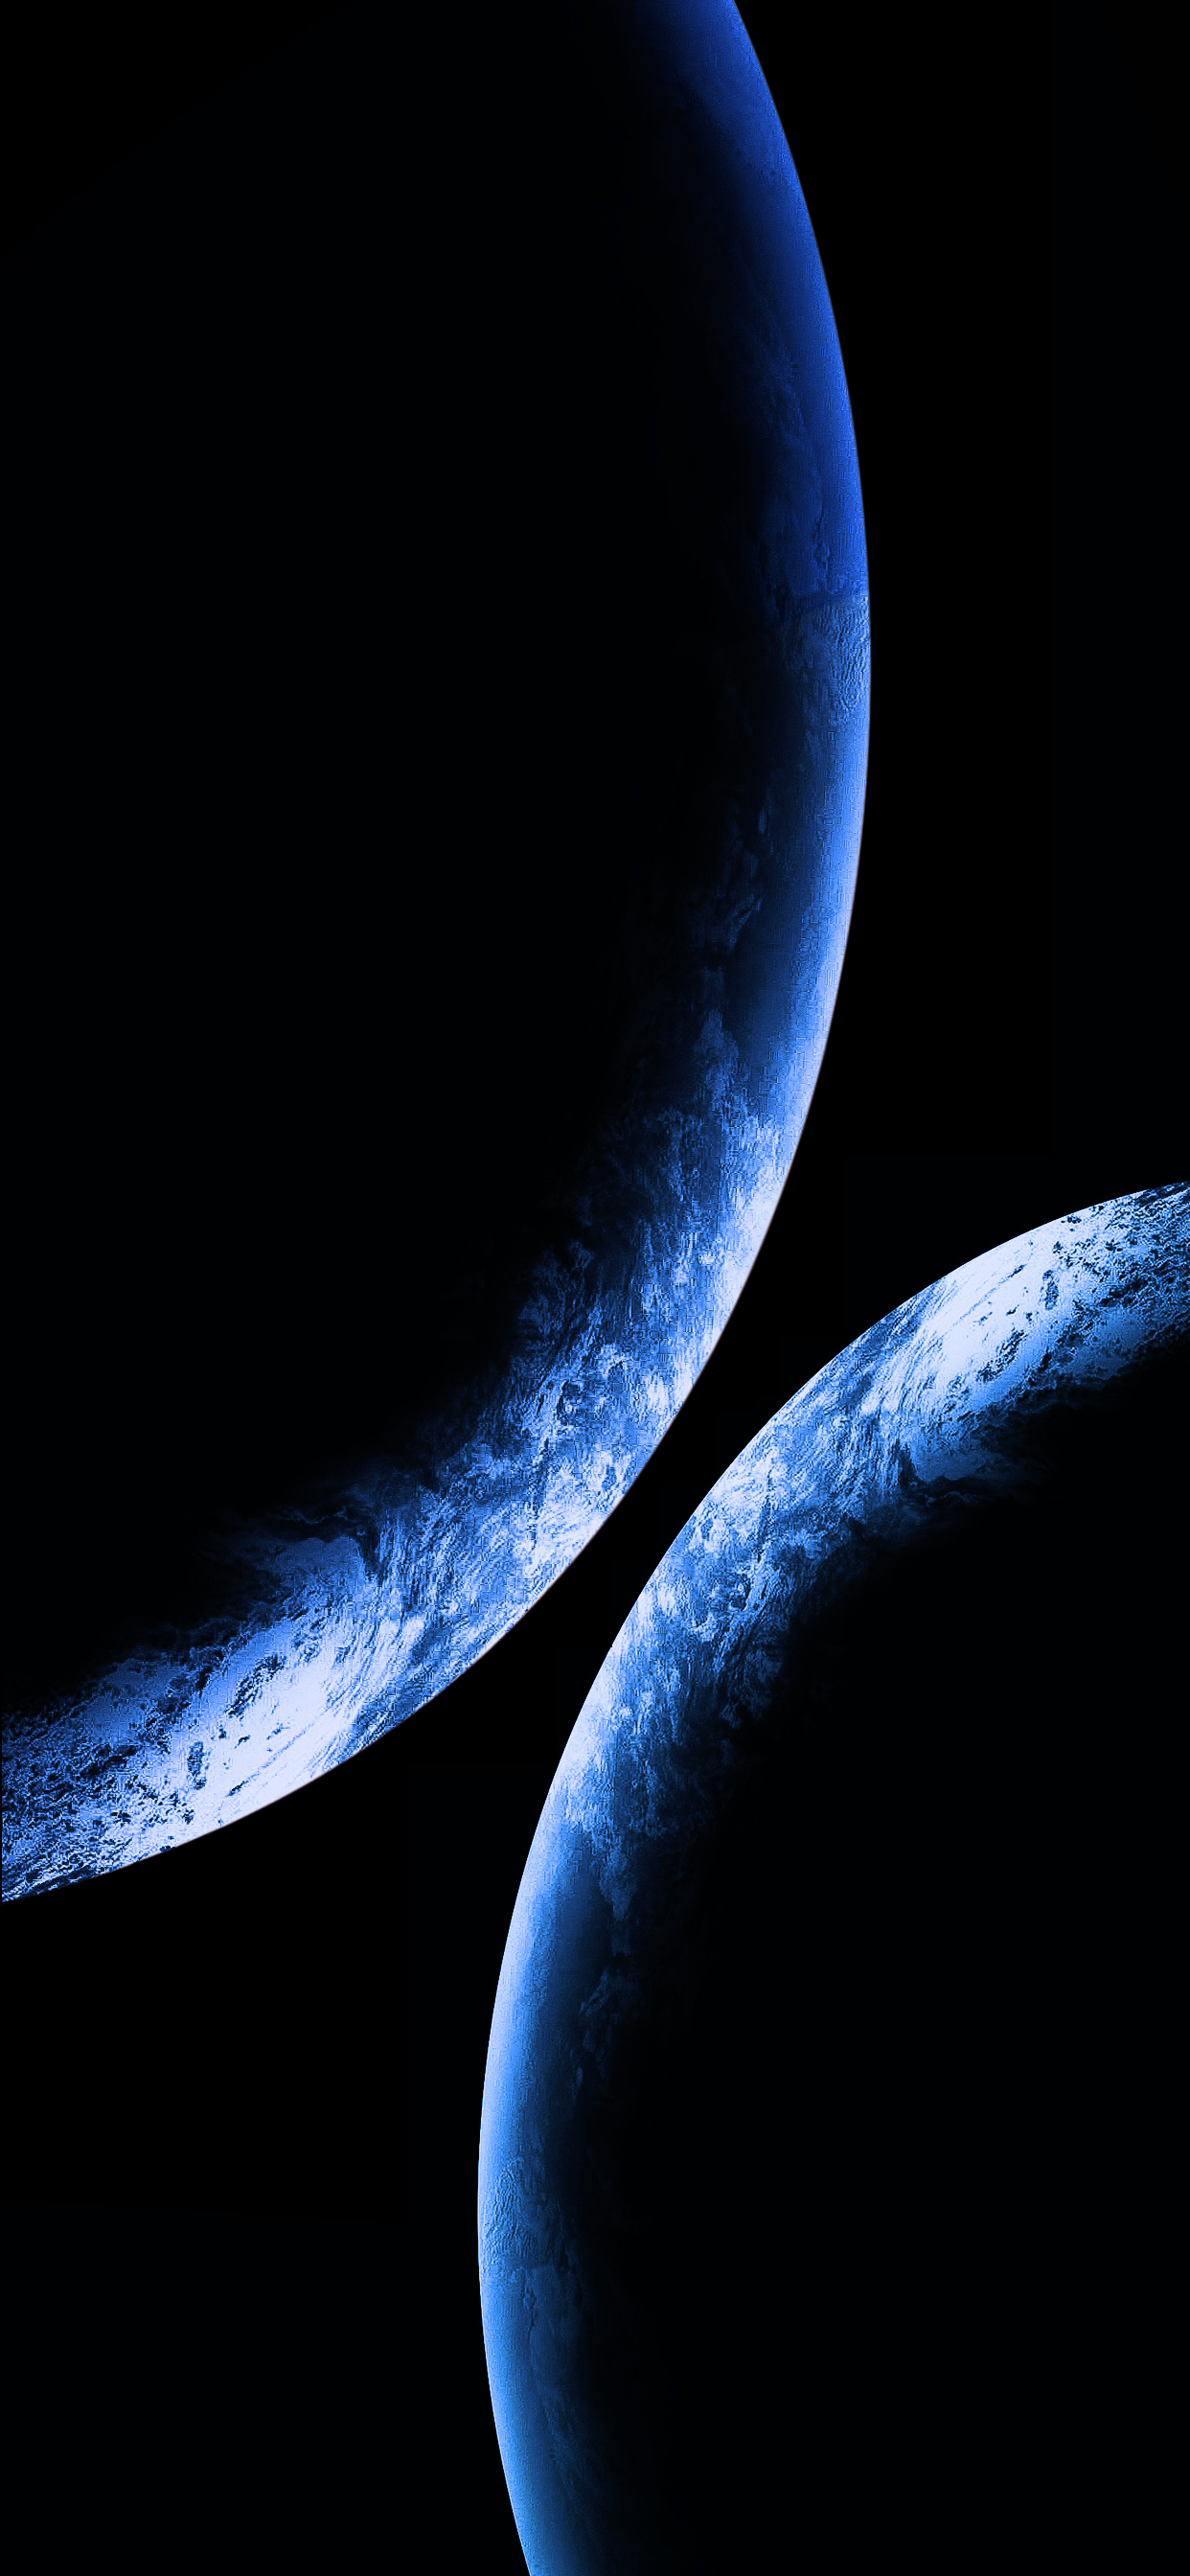 1242x2688 Wallpapers of the week: fantasy planets